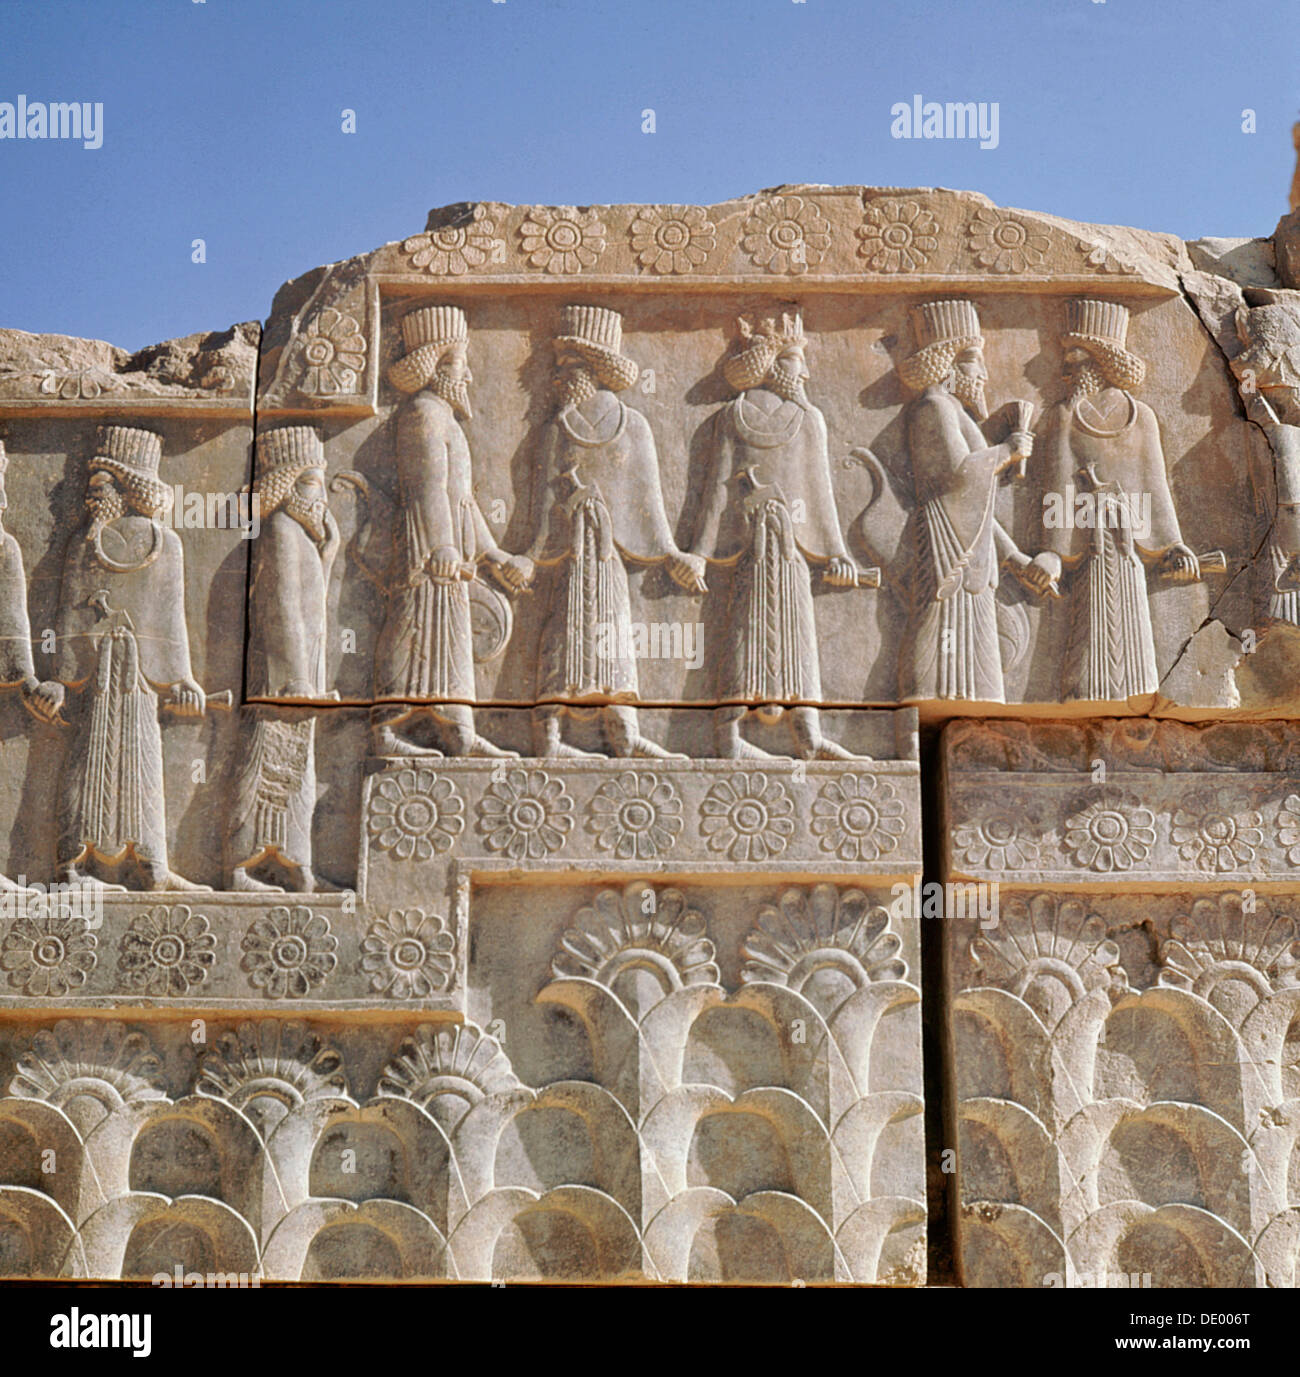 Relief carving ruins of the ancient persian city